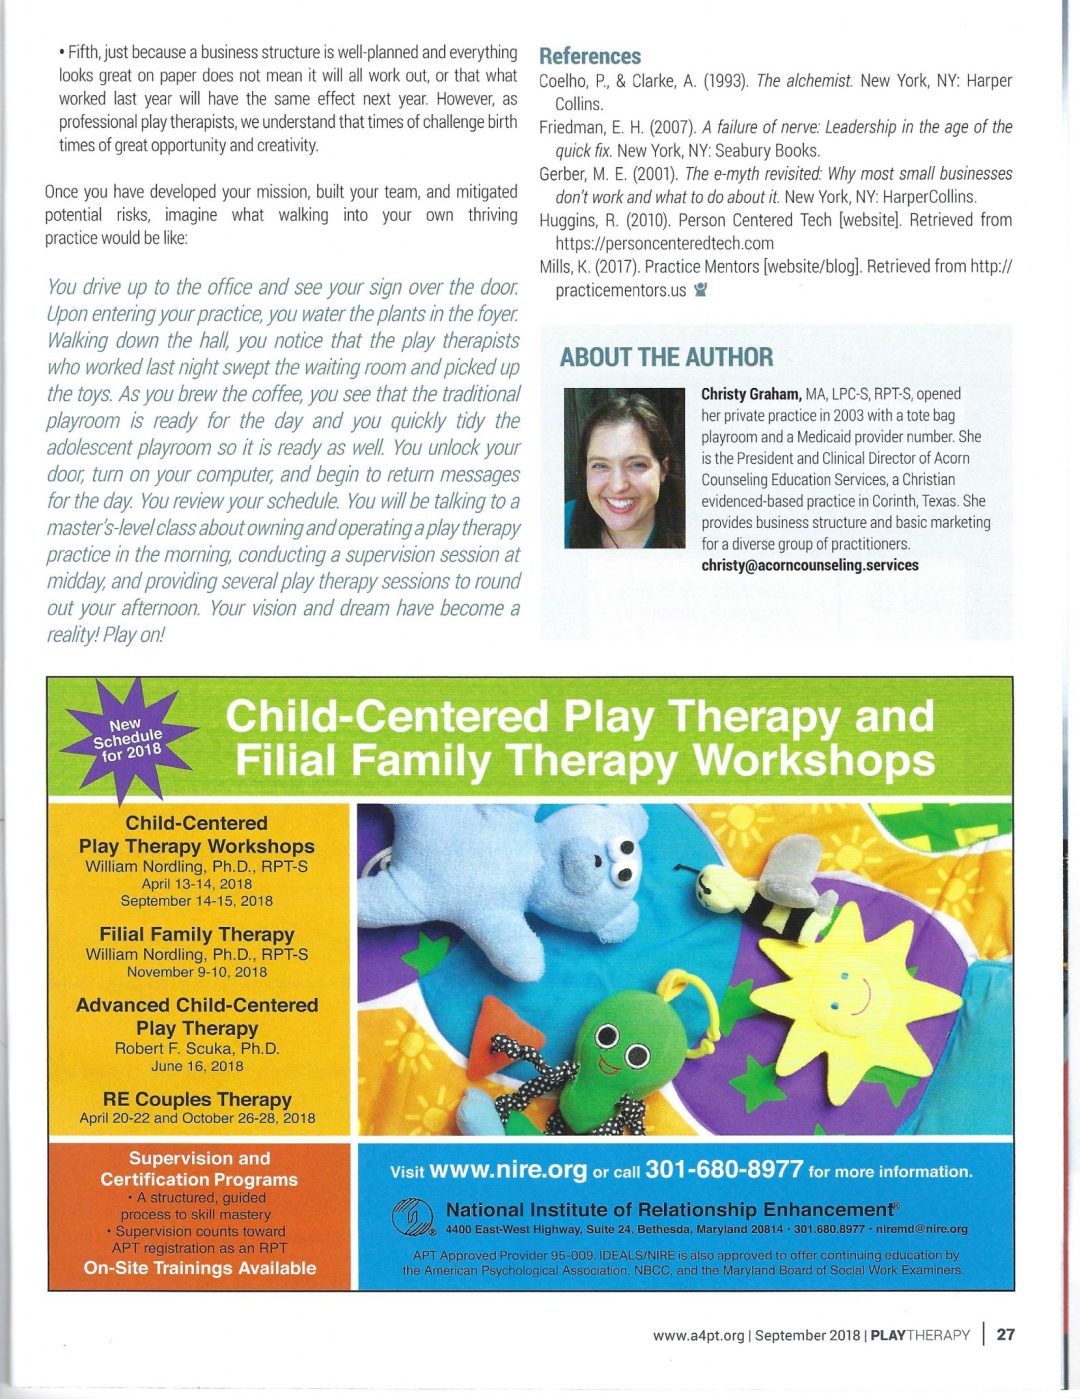 Developing the Dream: Play Therapy in Private Practice